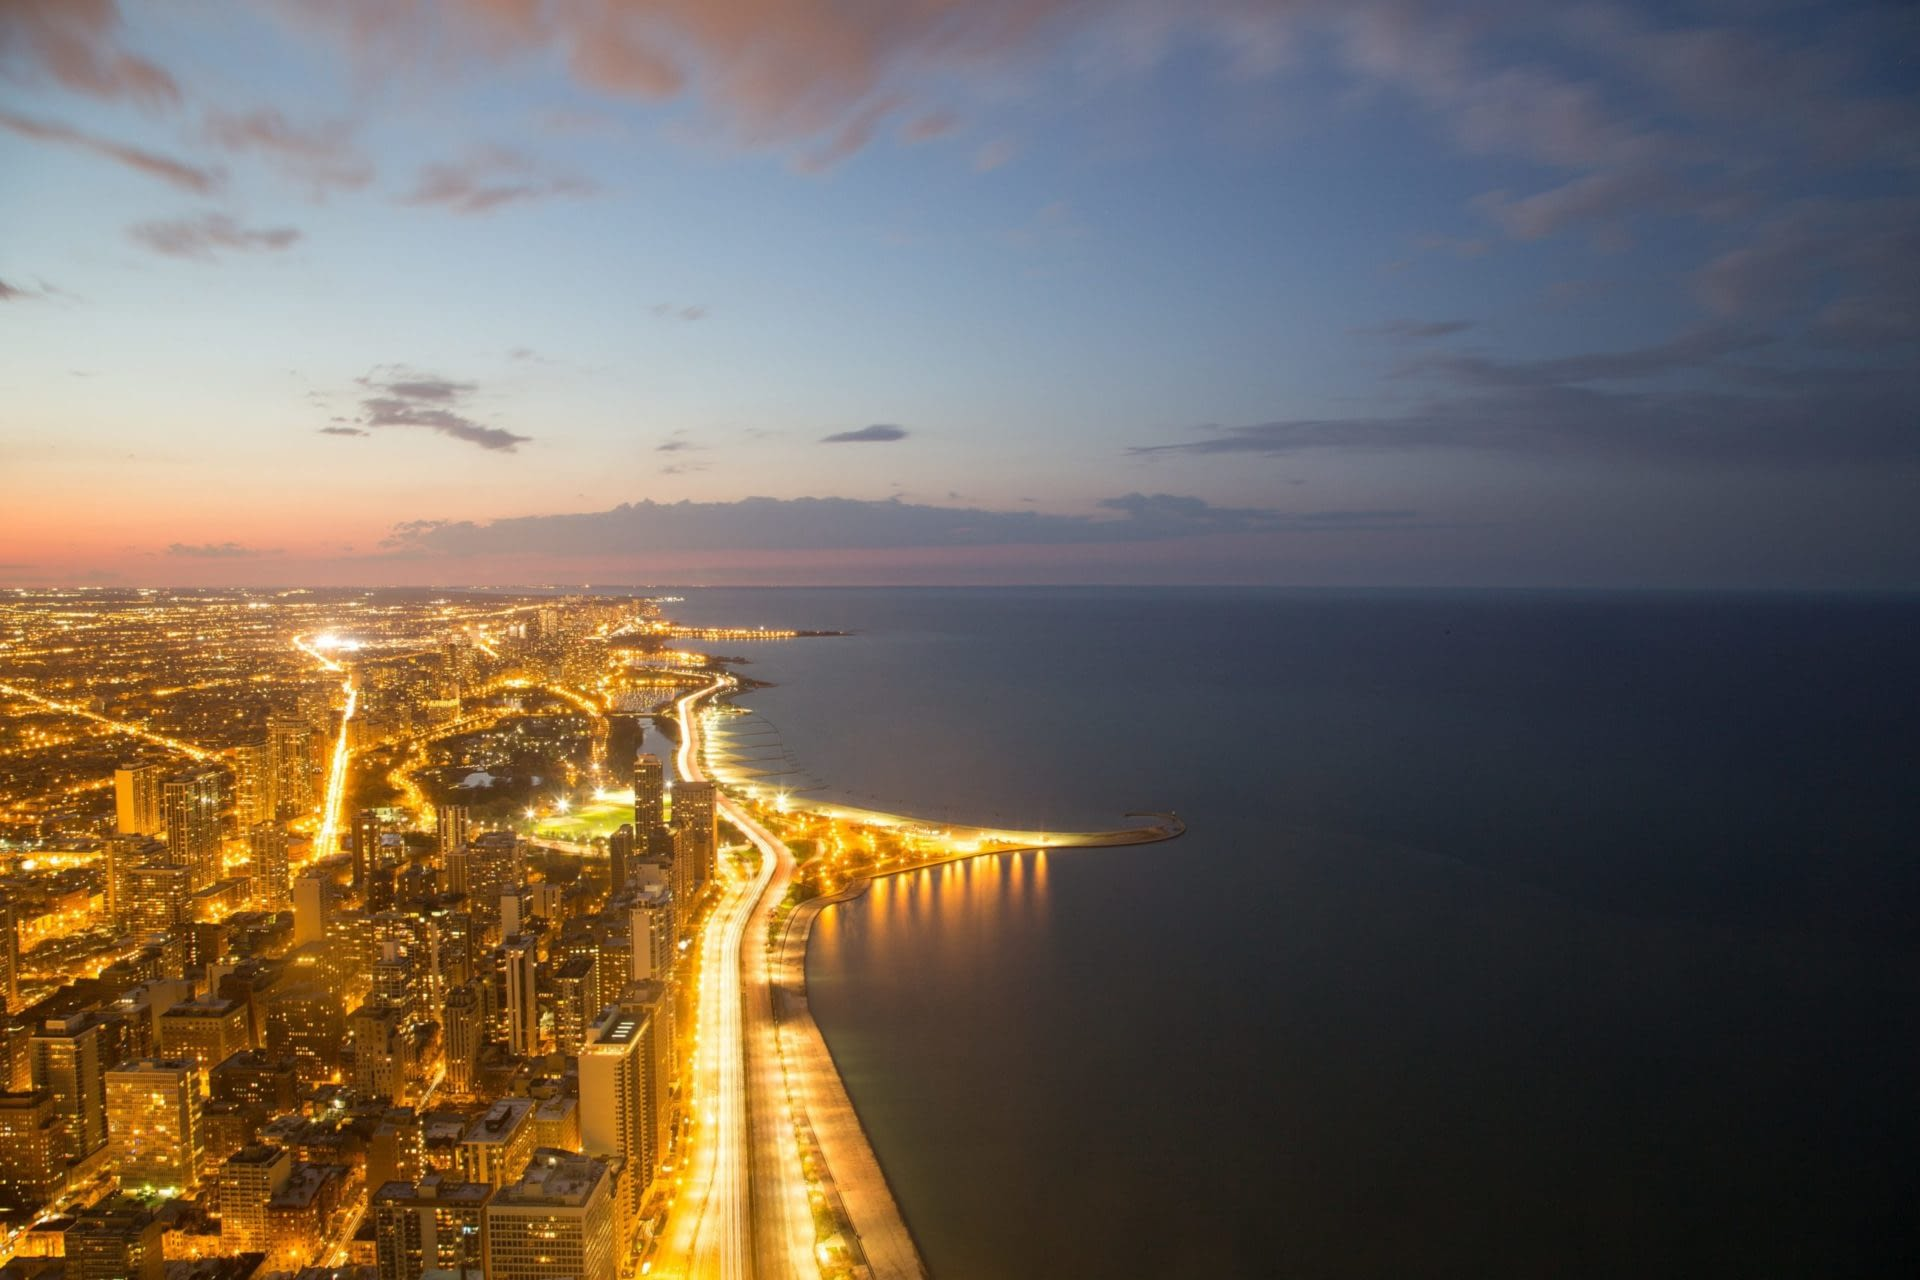 North-facing Chicago skyline and shoreline on Lake Michigan at dusk